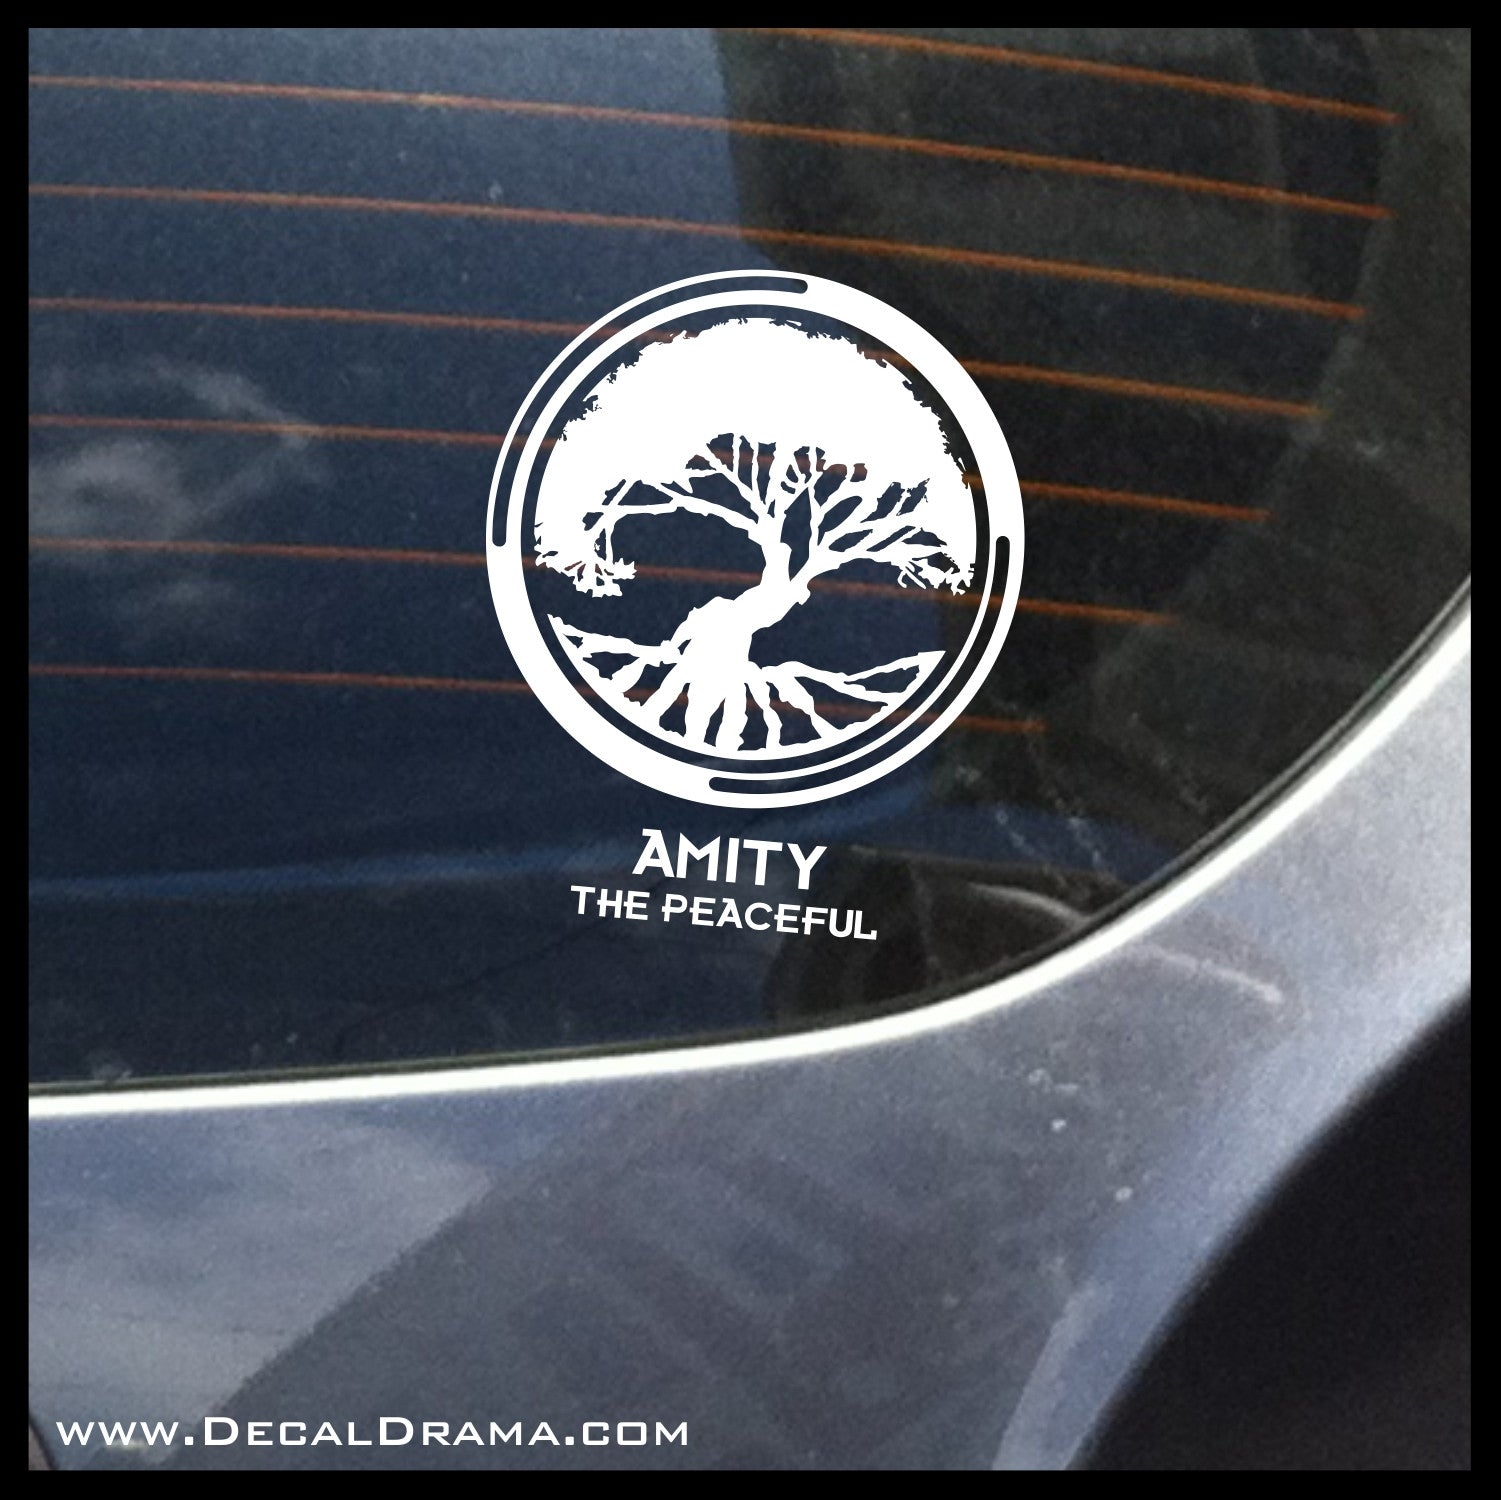 Amity the Peaceful, Divergent-inspired Fan Art Vinyl Car/Laptop Decal